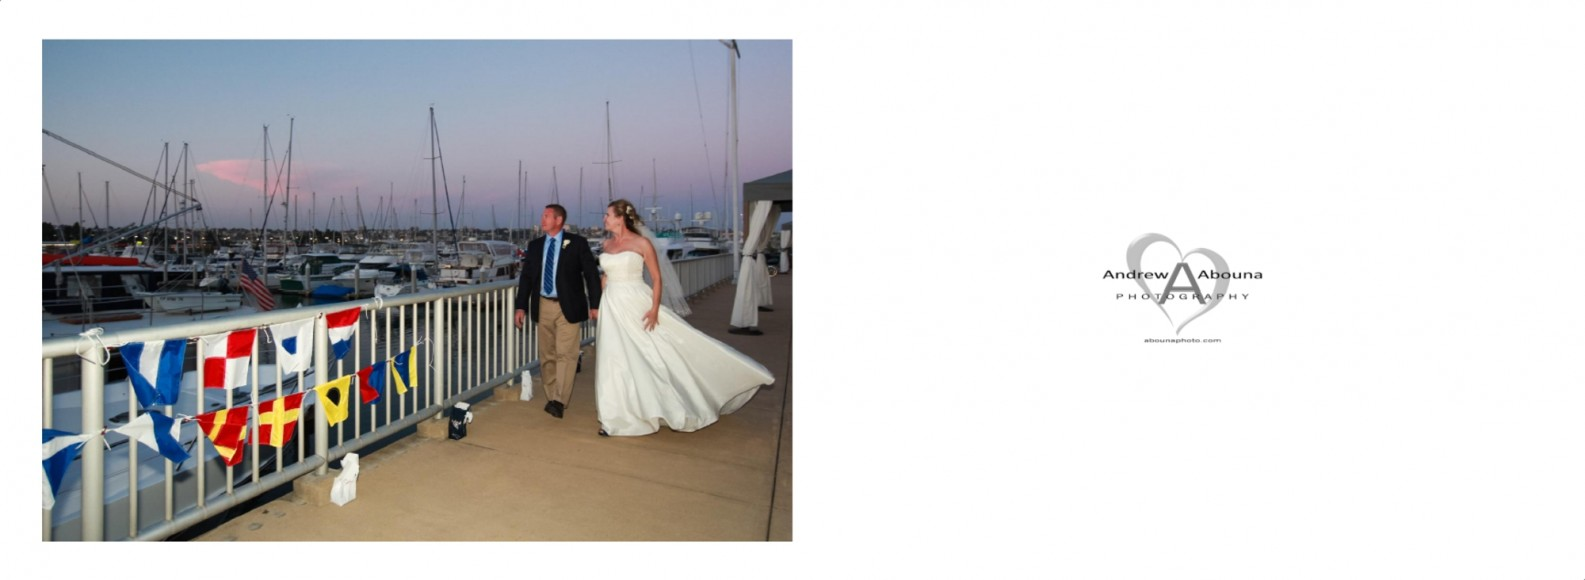 Laura and Davids Wedding Book - San Diego Yacht Wedding by Wedding Photographers Andrew Abouna - Pages 43-44